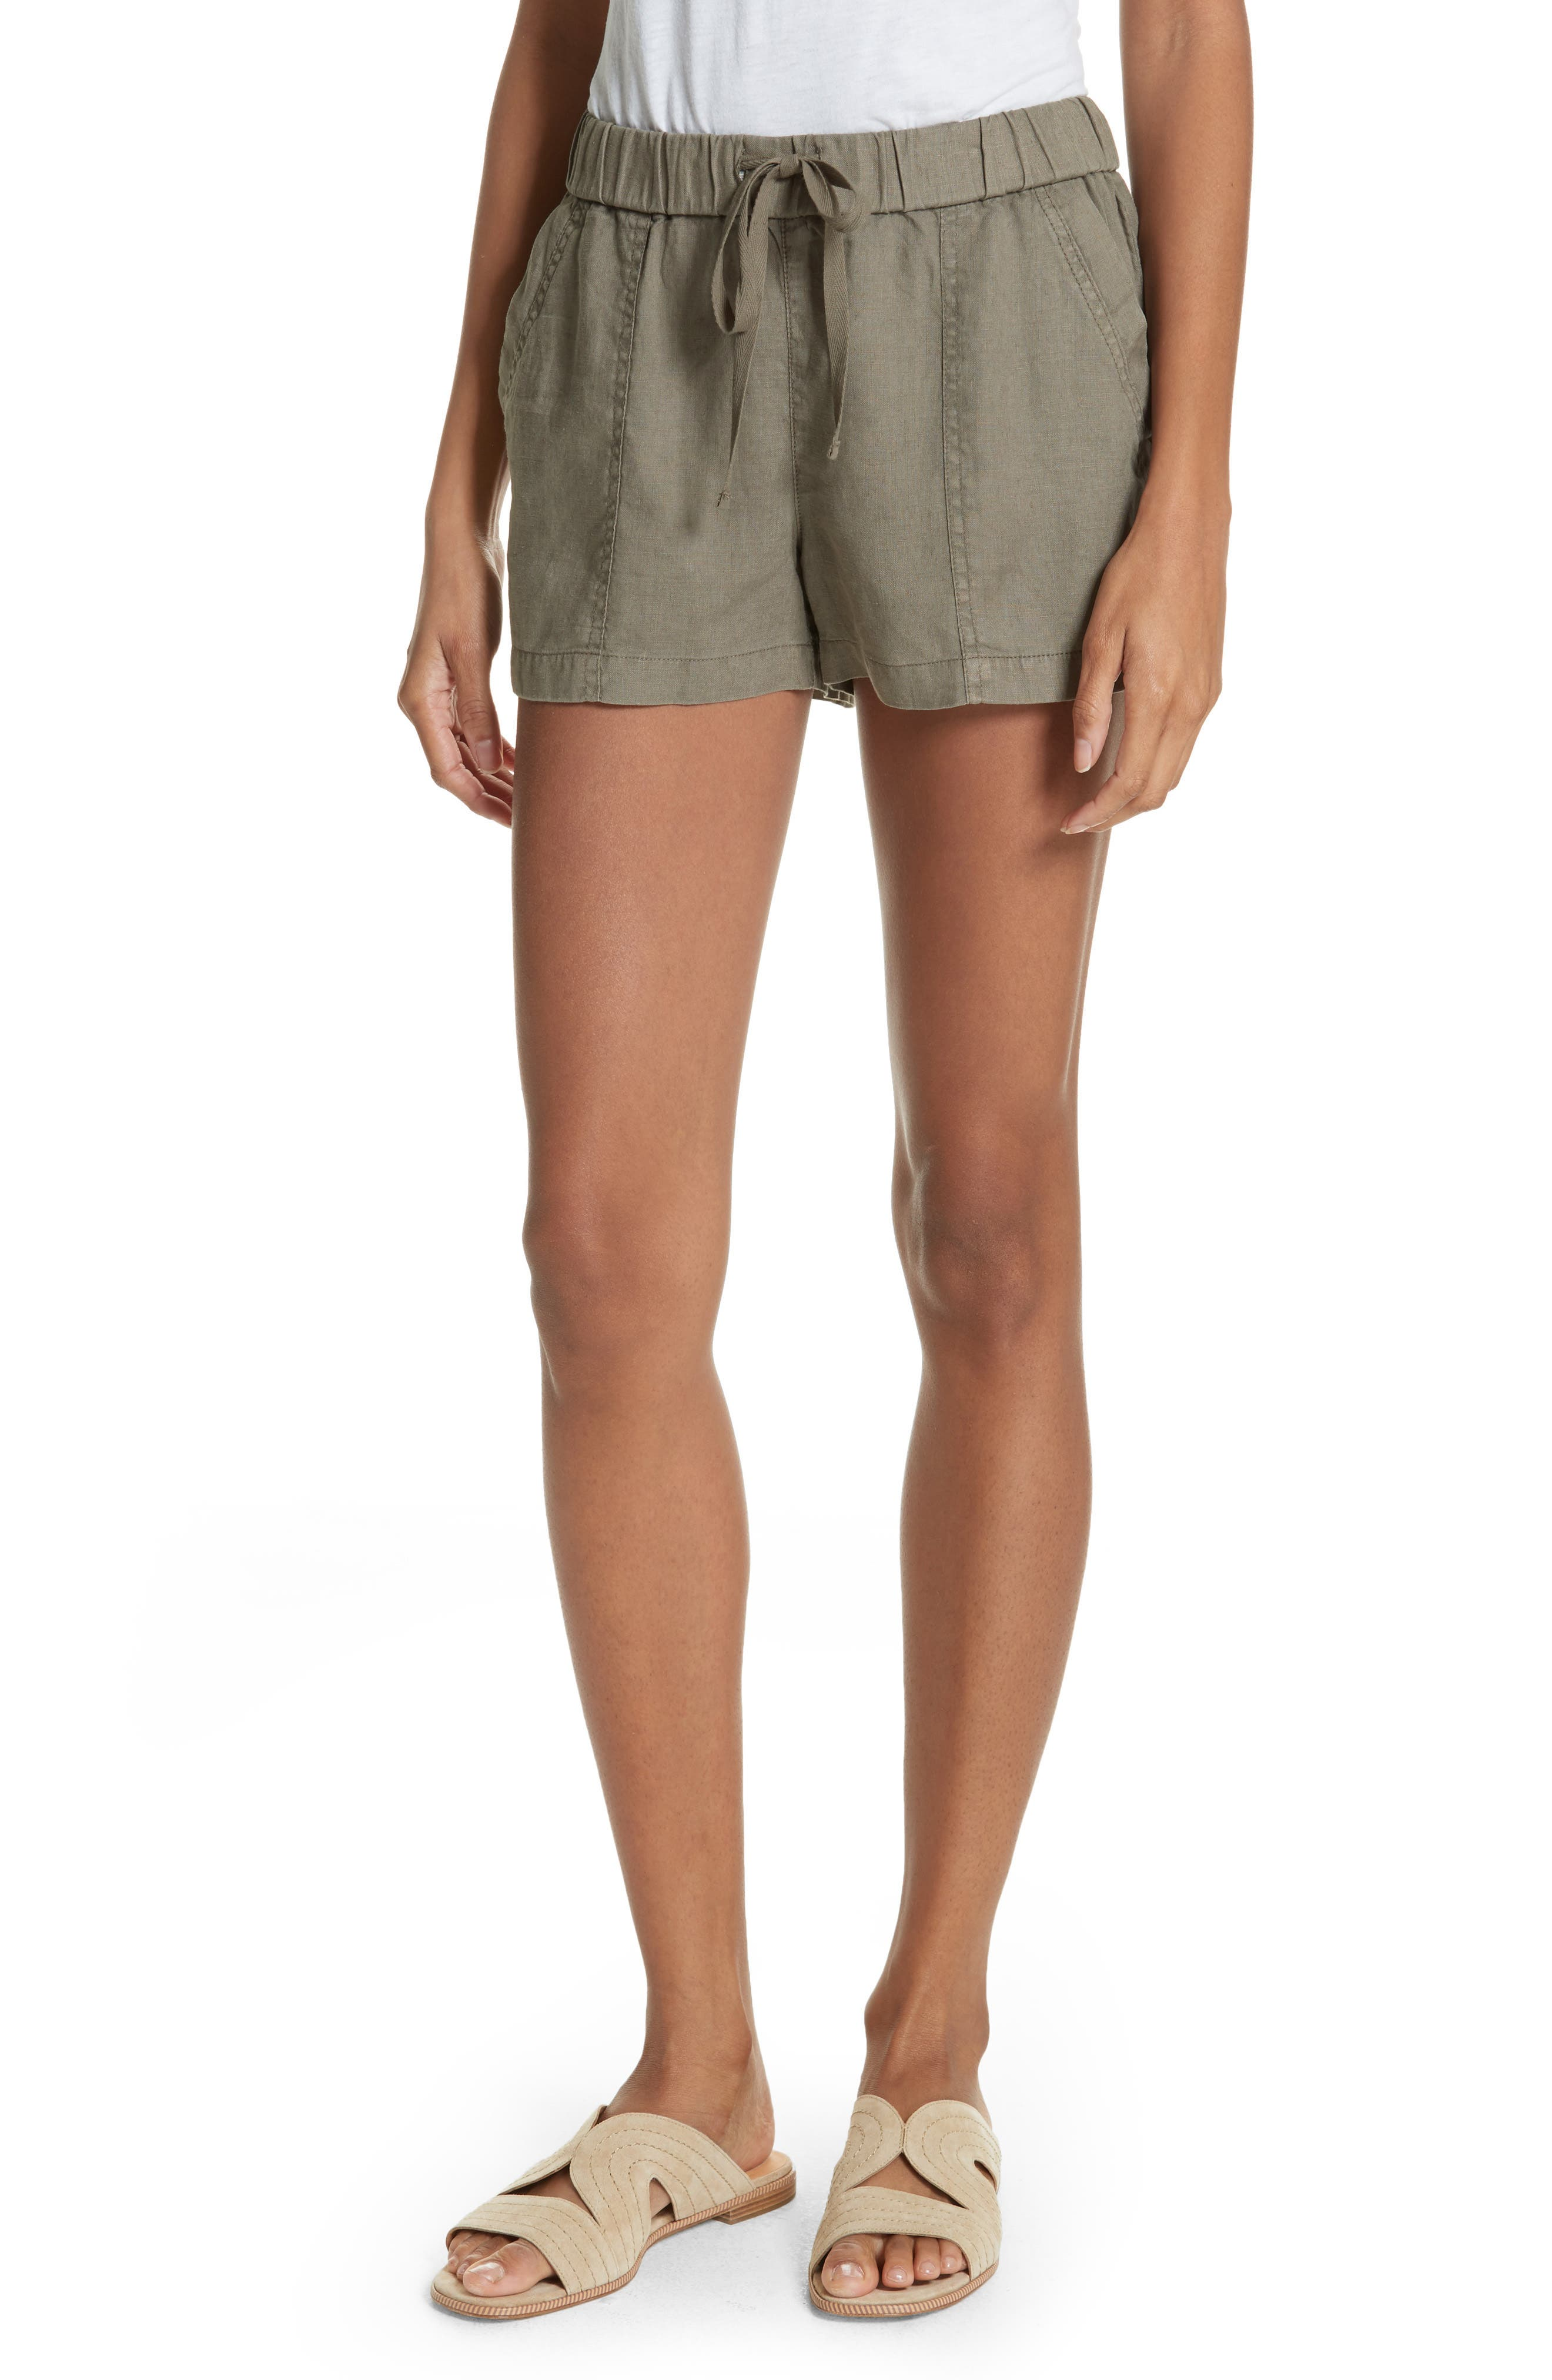 Fosette Linen Drawstring Shorts,                             Main thumbnail 1, color,